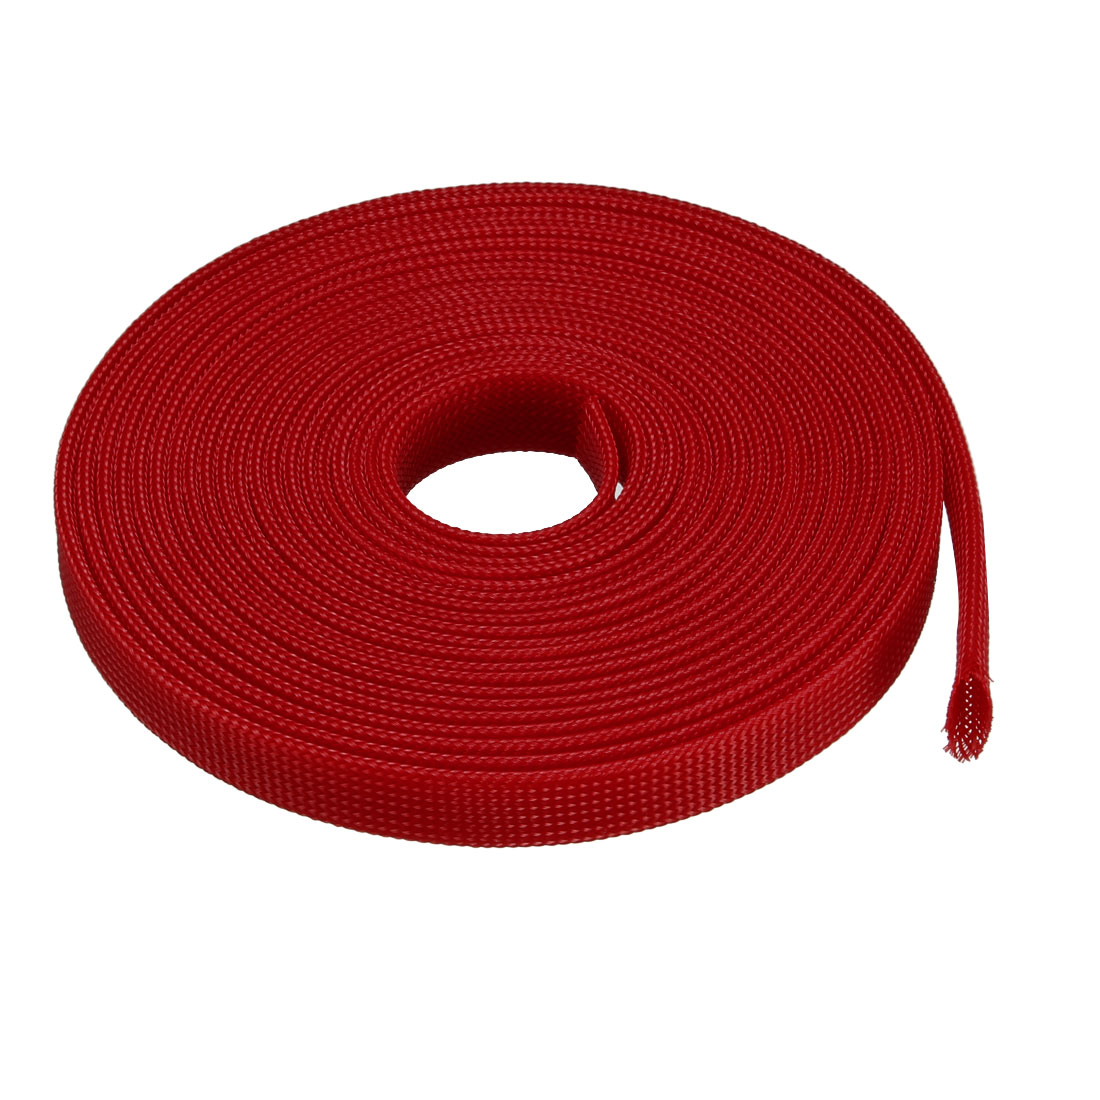 18mm Dia Tight PET Expandable Sleeving Cable Wire Wrap Sheath Red 5M